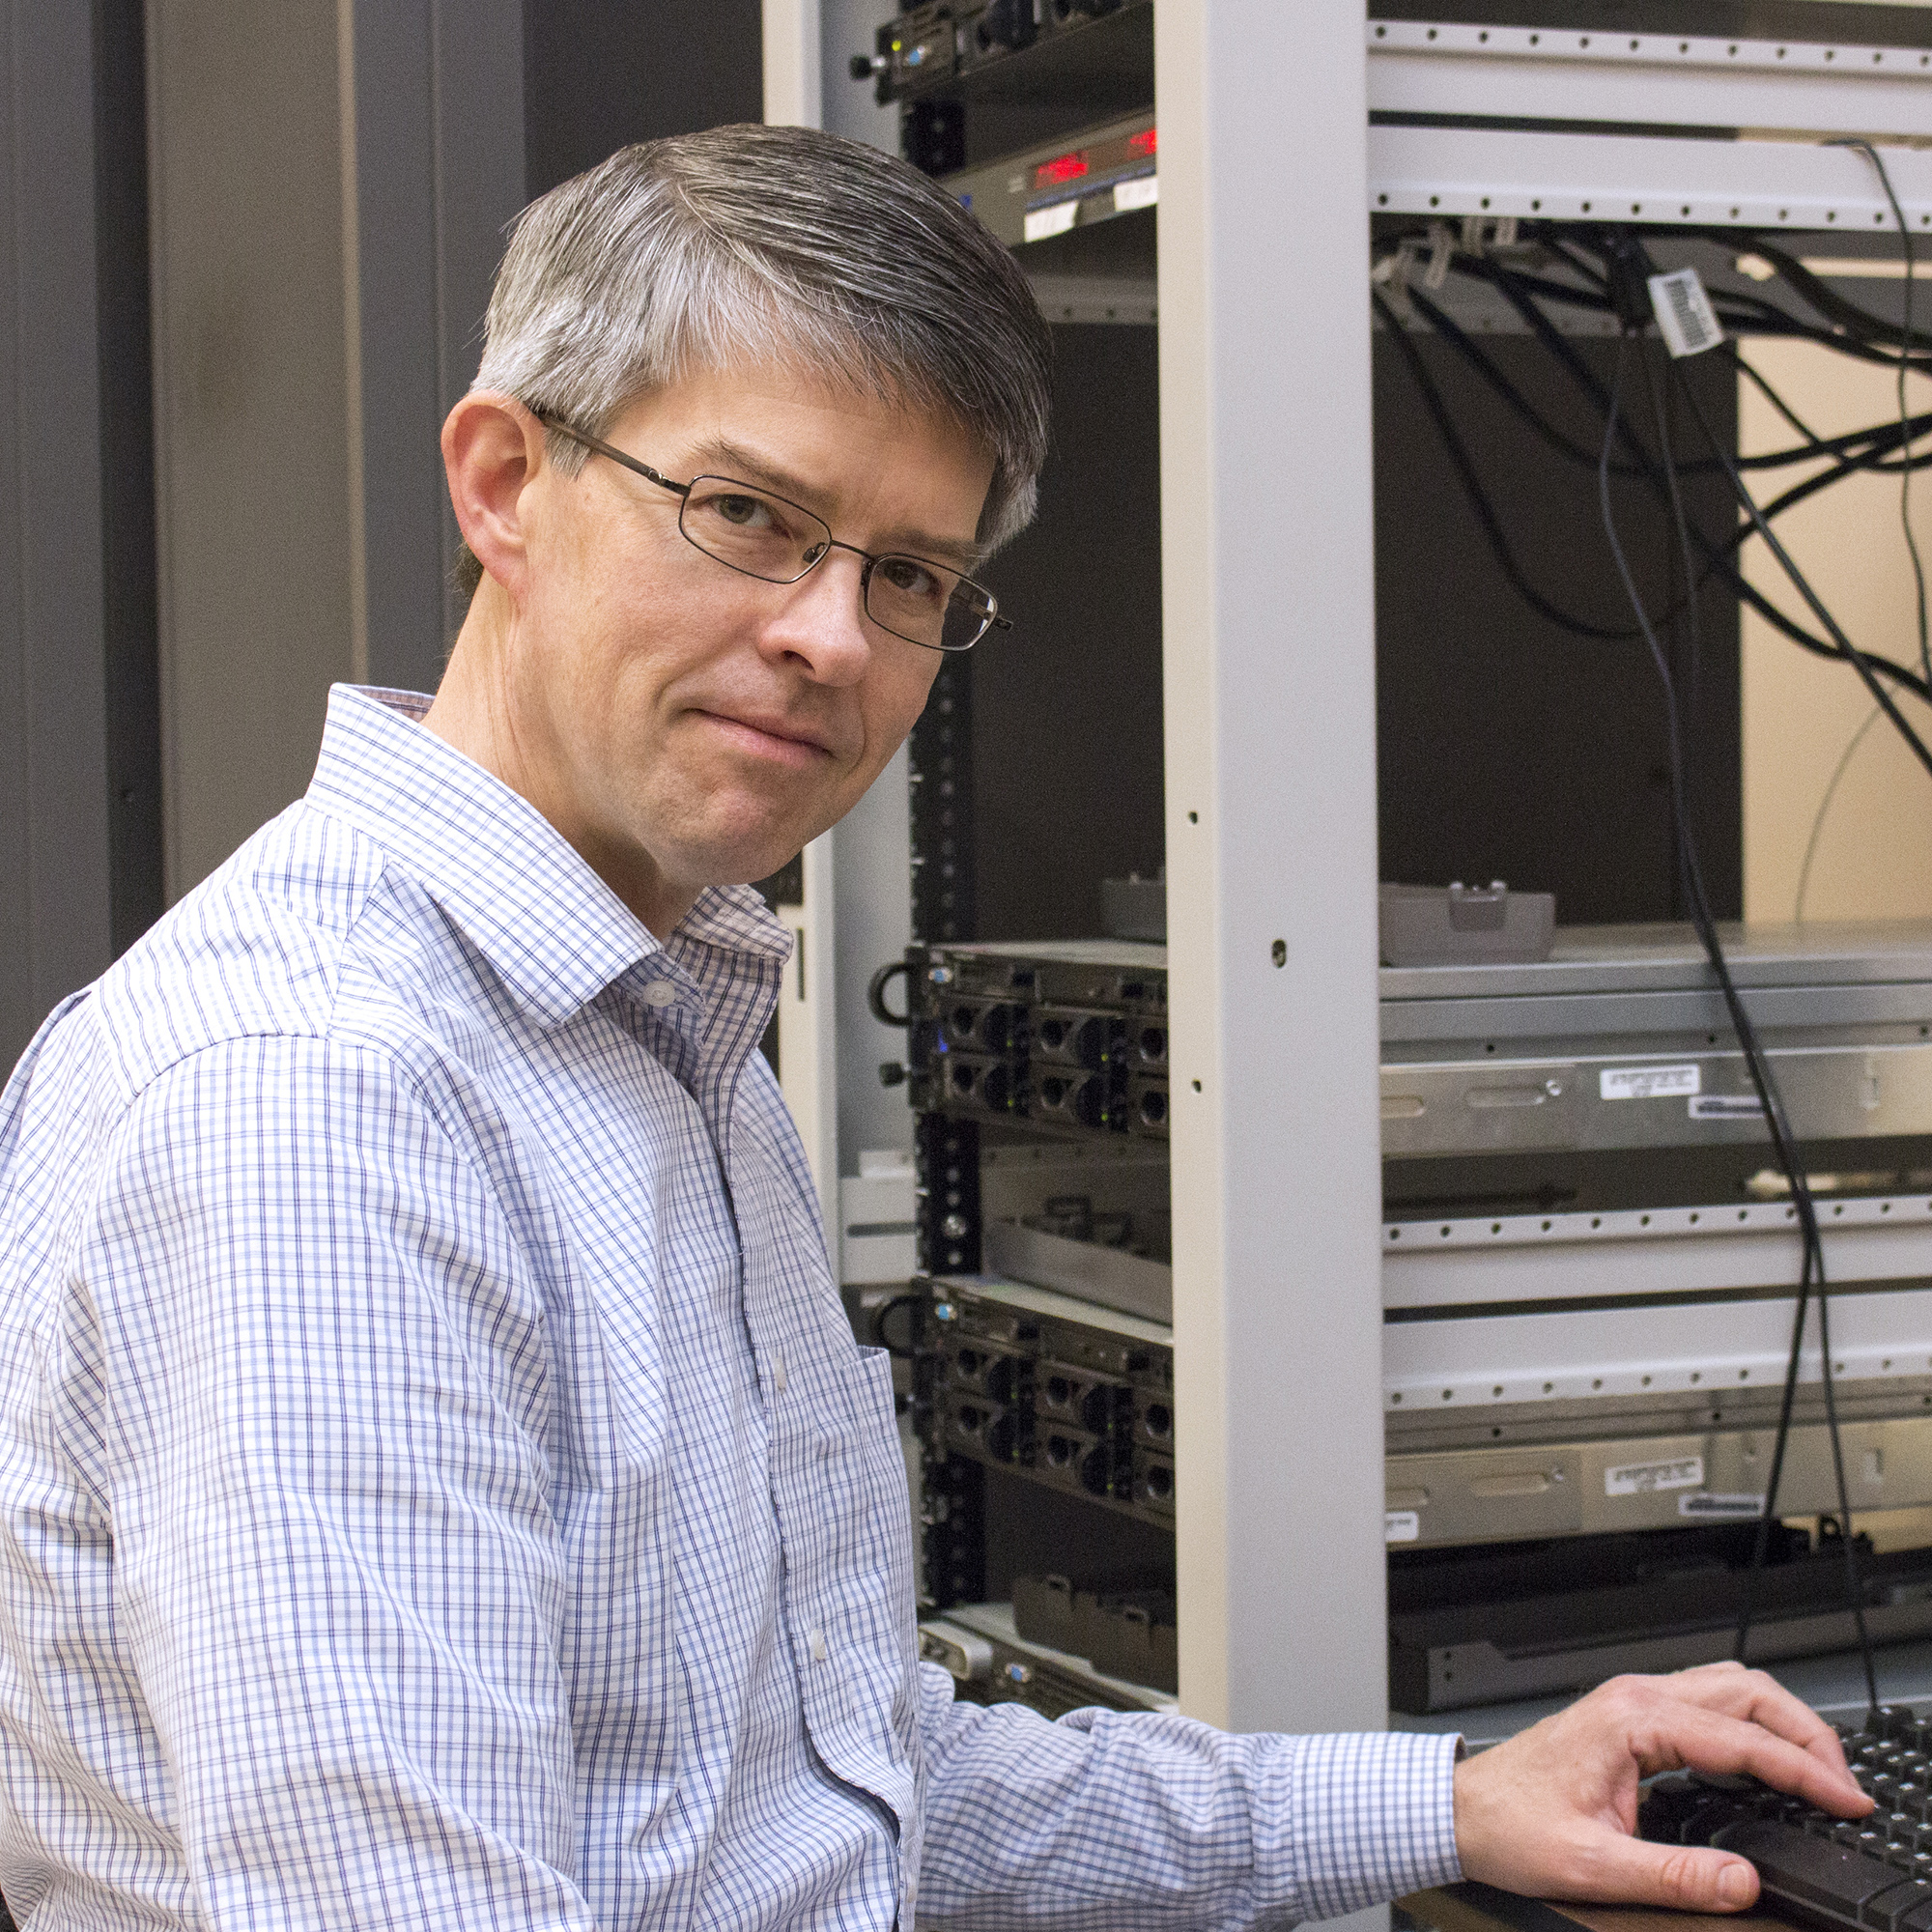 Photo of Peter Kukla sitting in front of keyboard in the server room at the State Library of Ohio